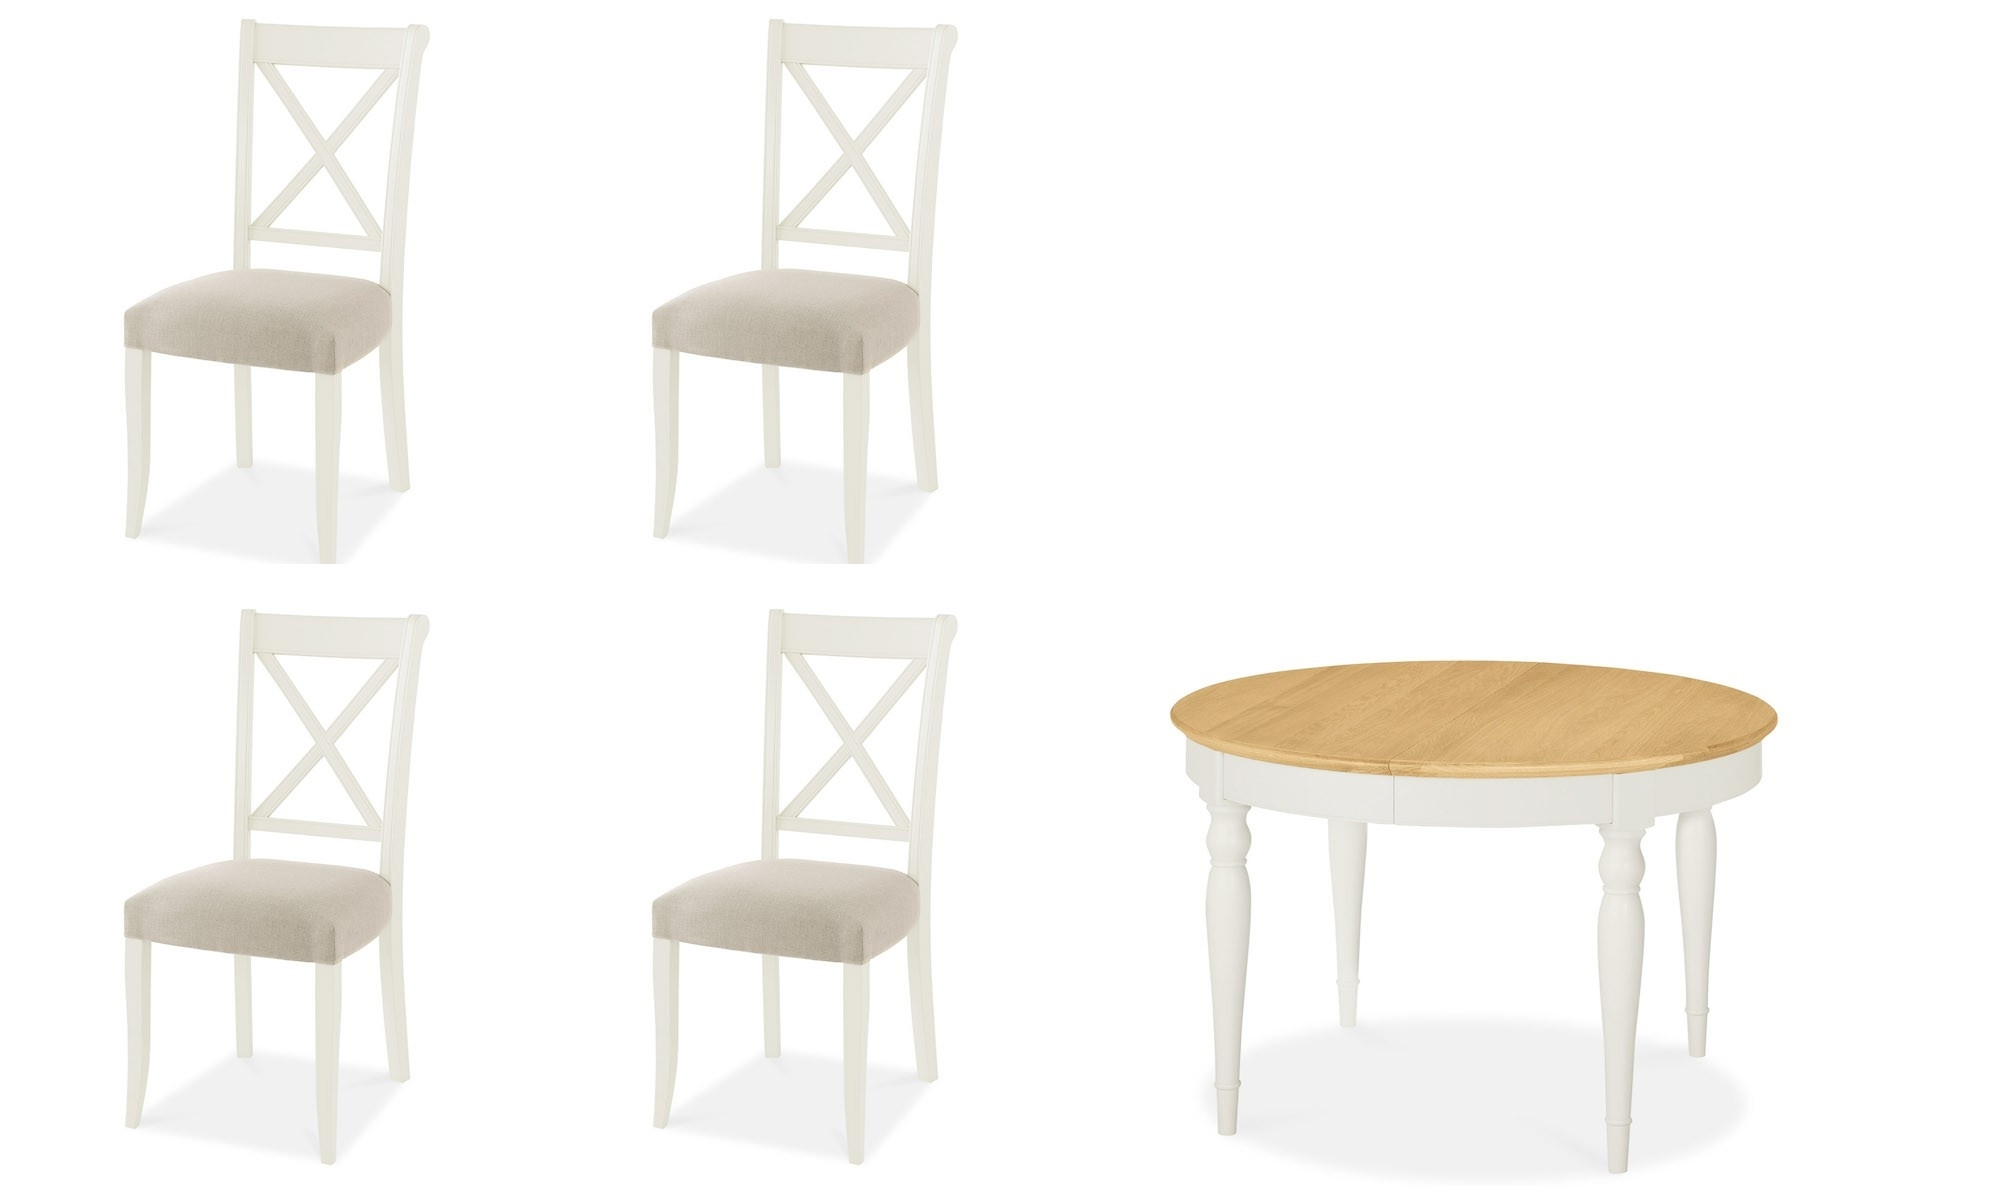 Georgie – Round Extending Dining Table And Chairs In Cream – Oak Top With Best And Newest Round Extendable Dining Tables And Chairs (View 3 of 25)